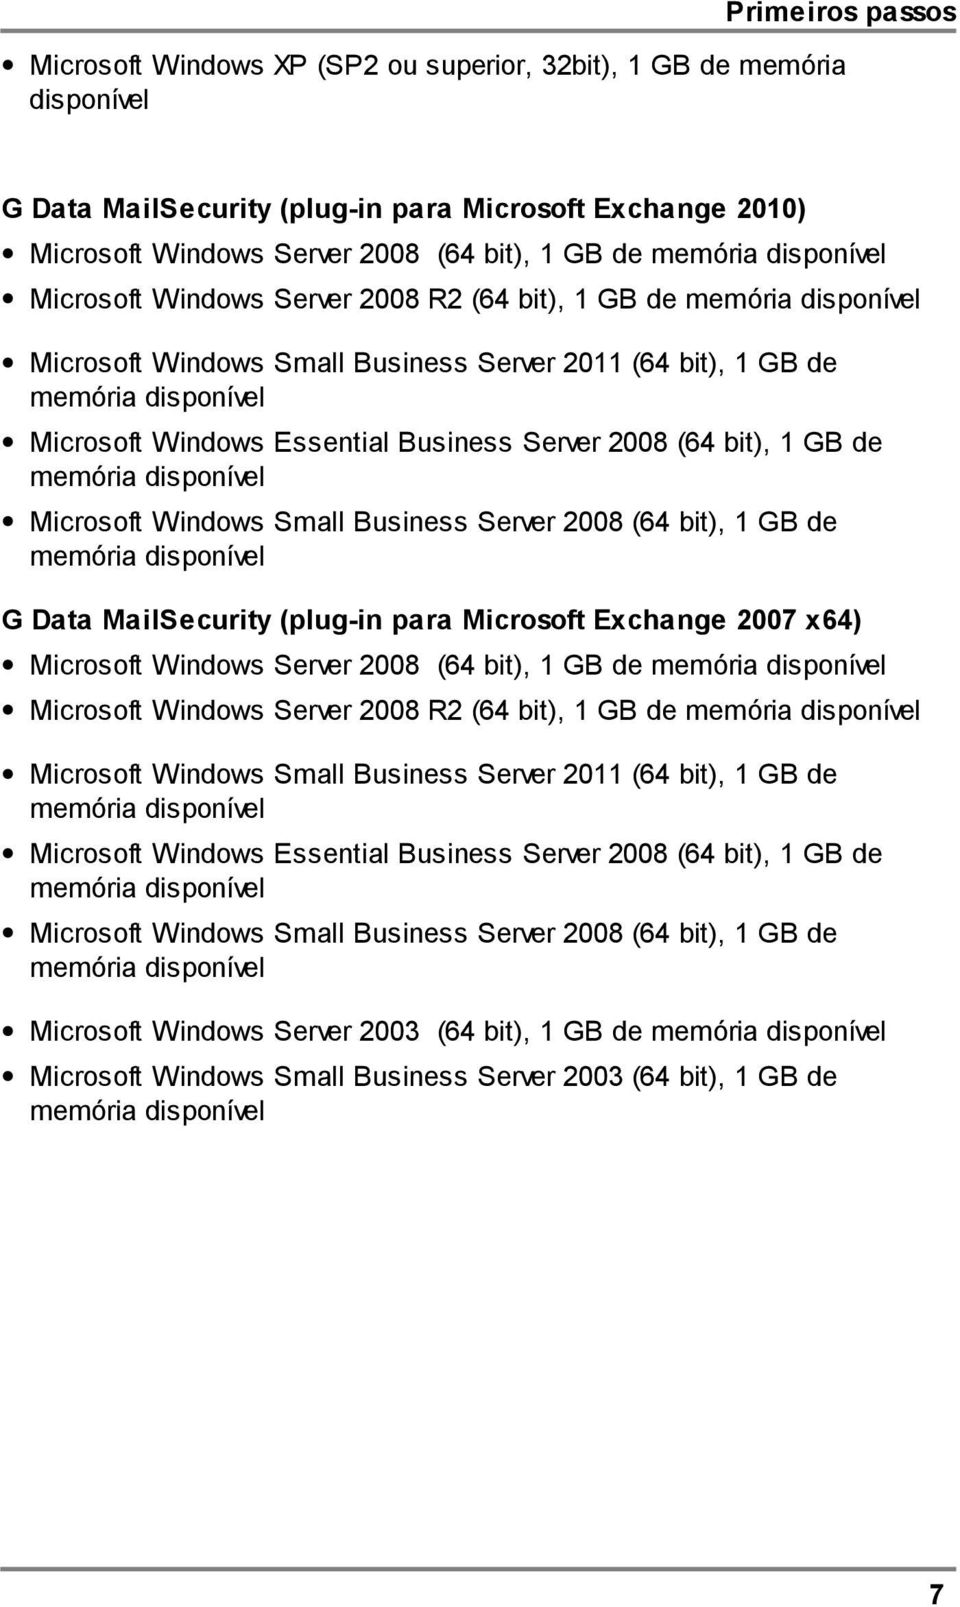 Business Server 2008 (64 bit), 1 GB de memória disponível Microsoft Windows Small Business Server 2008 (64 bit), 1 GB de memória disponível G Data MailSecurity (plug-in para Microsoft Exchange 2007